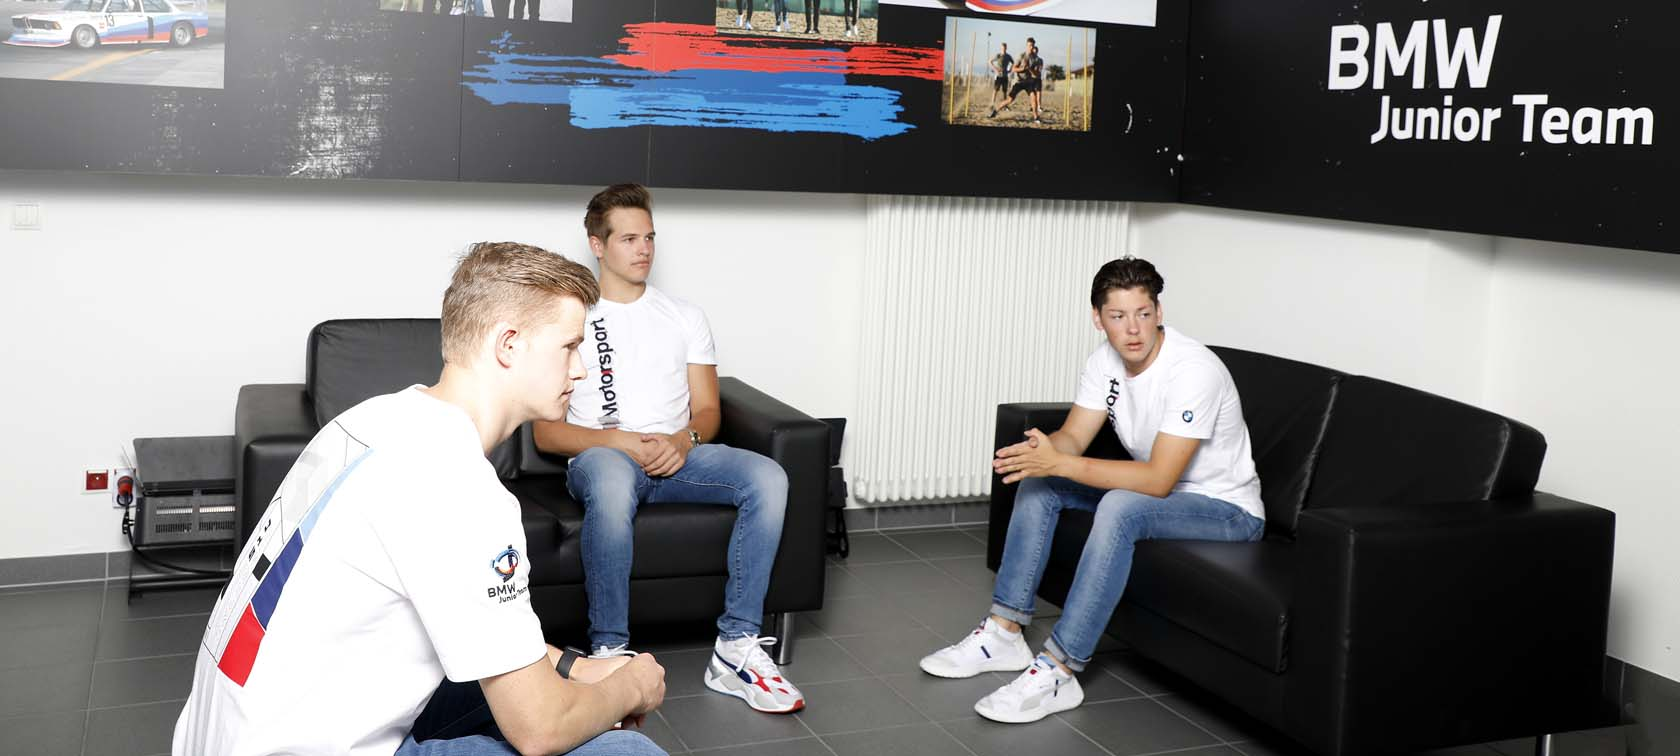 BMW Junior Team, Max Hesse, Dan Harper, Neil Verhagen